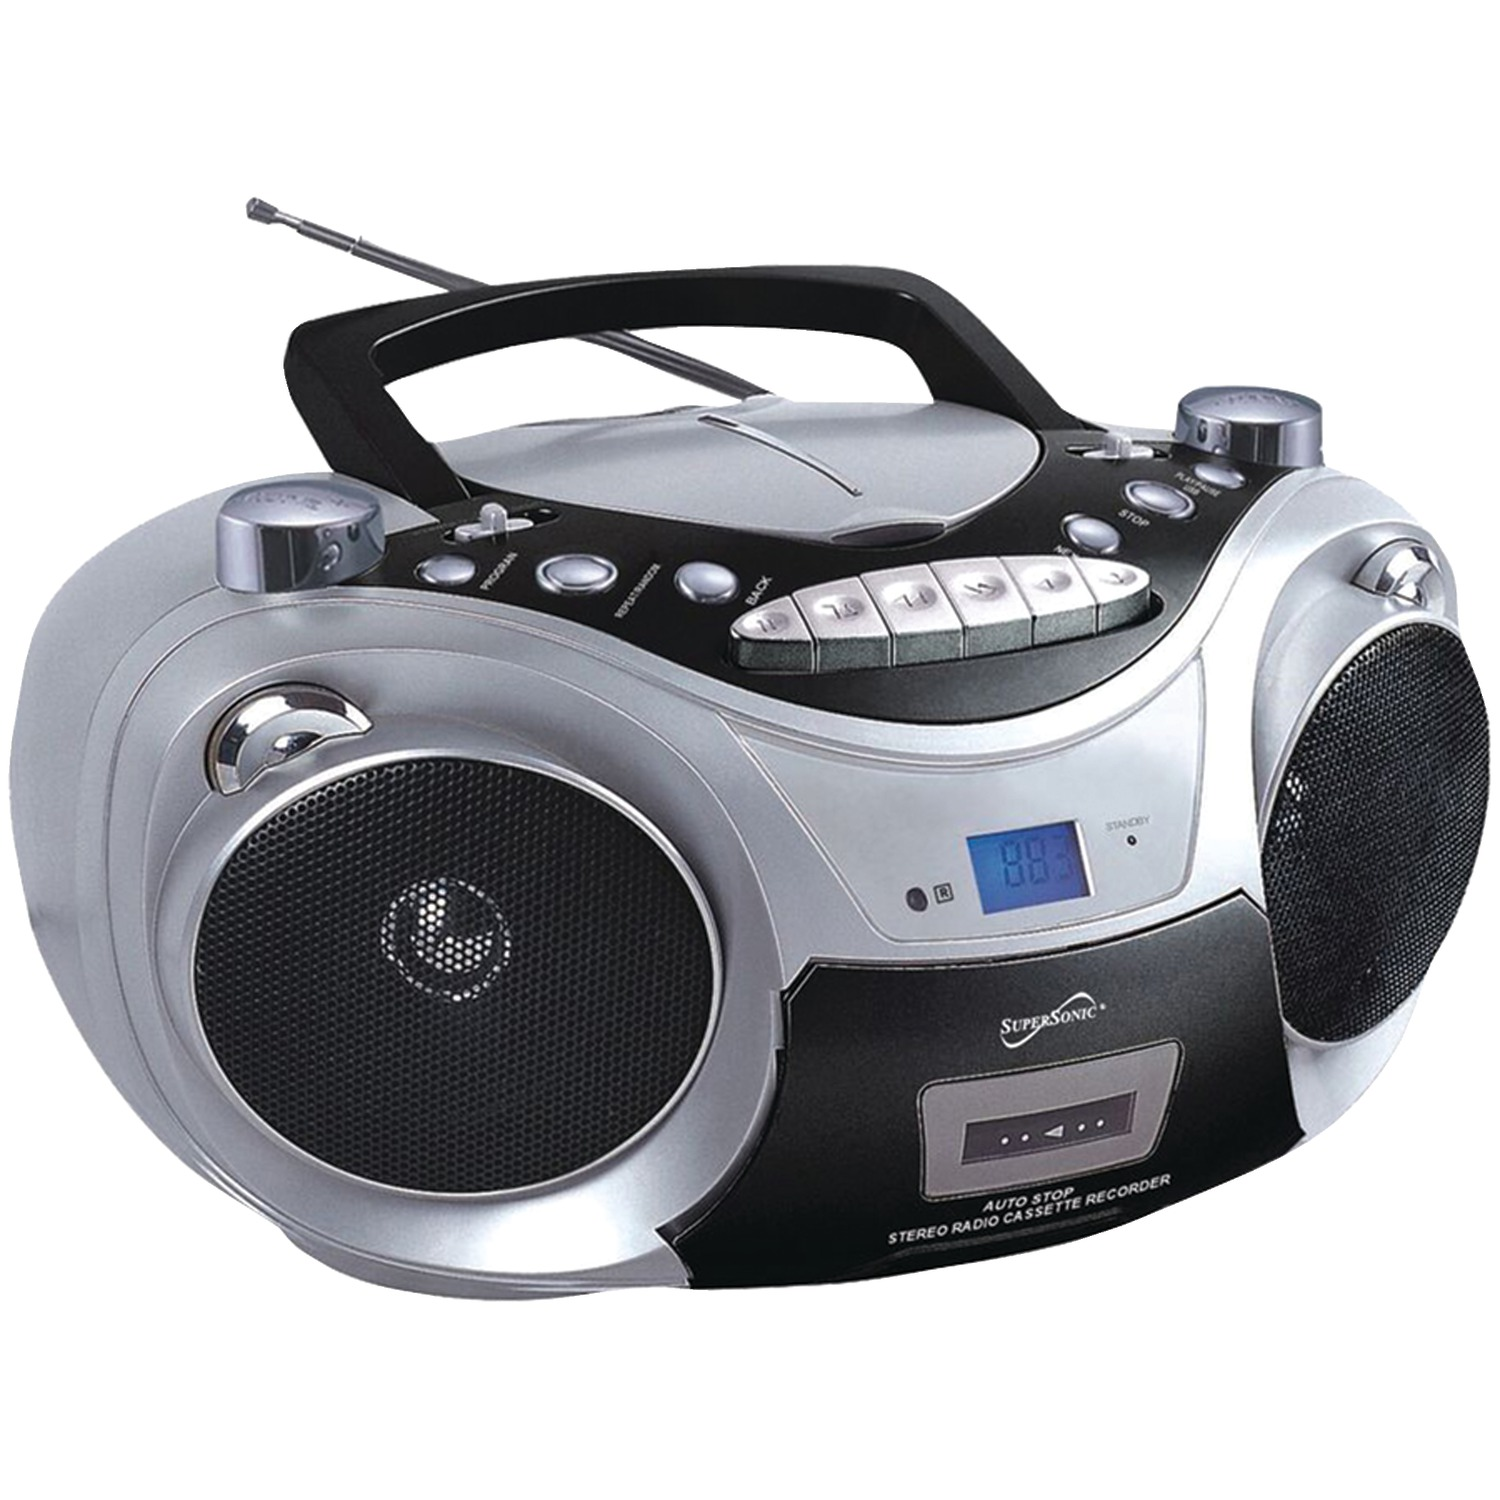 Supersonic sc 709 silver portable mp3 cd player with - Mobile porta cd ...